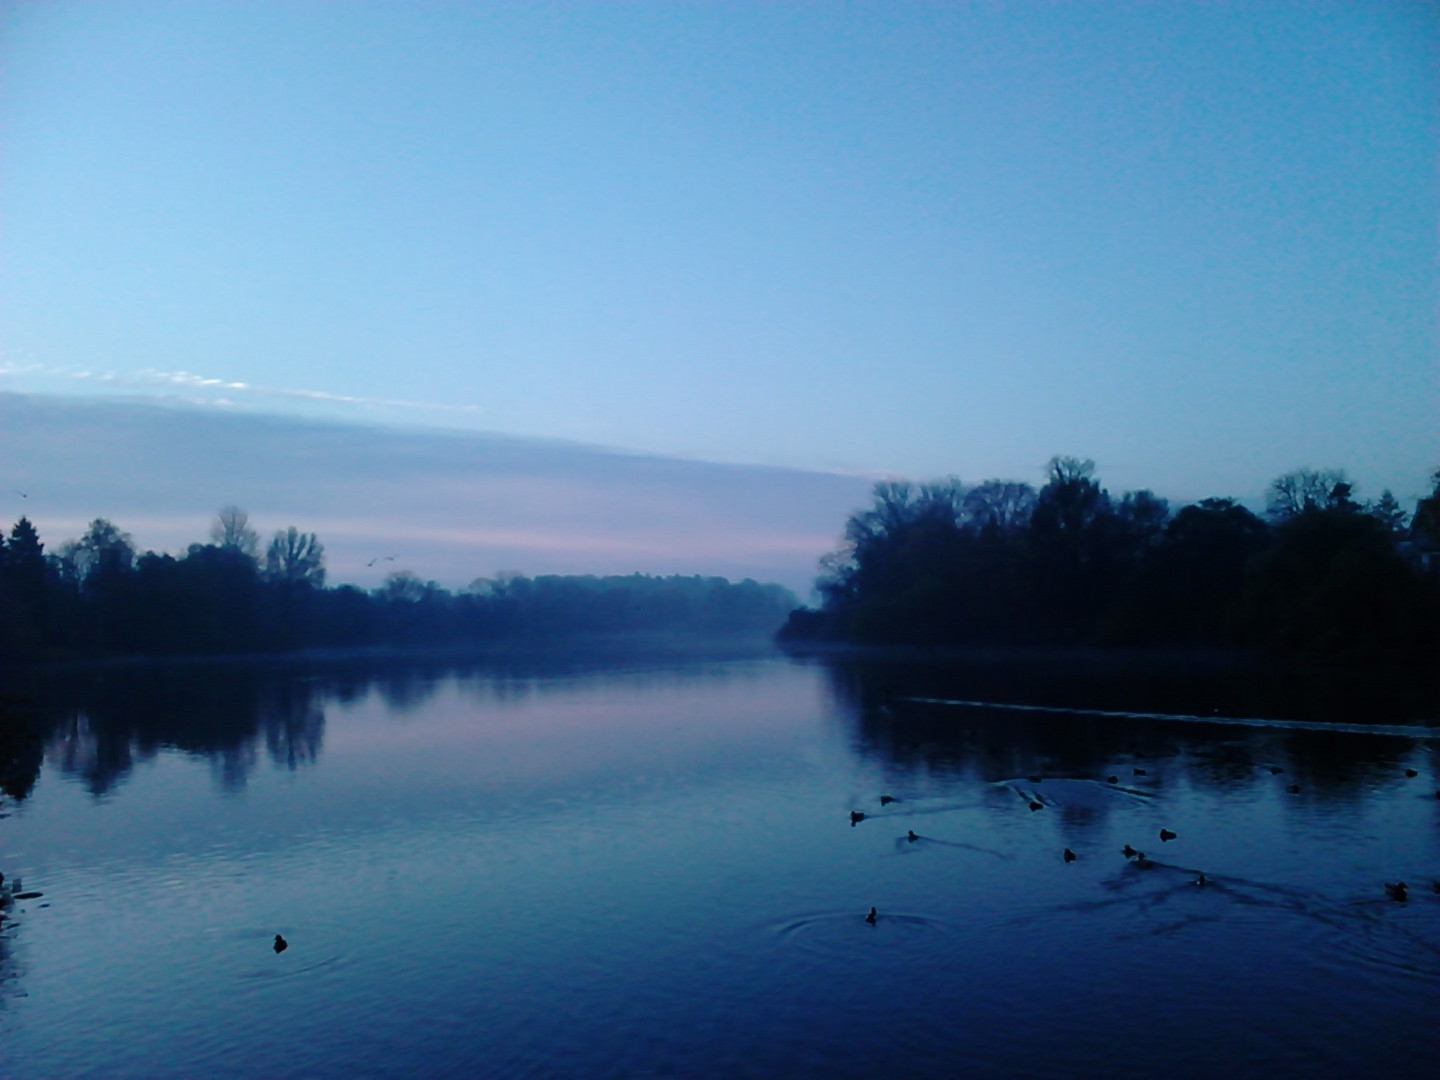 Morgens am See2